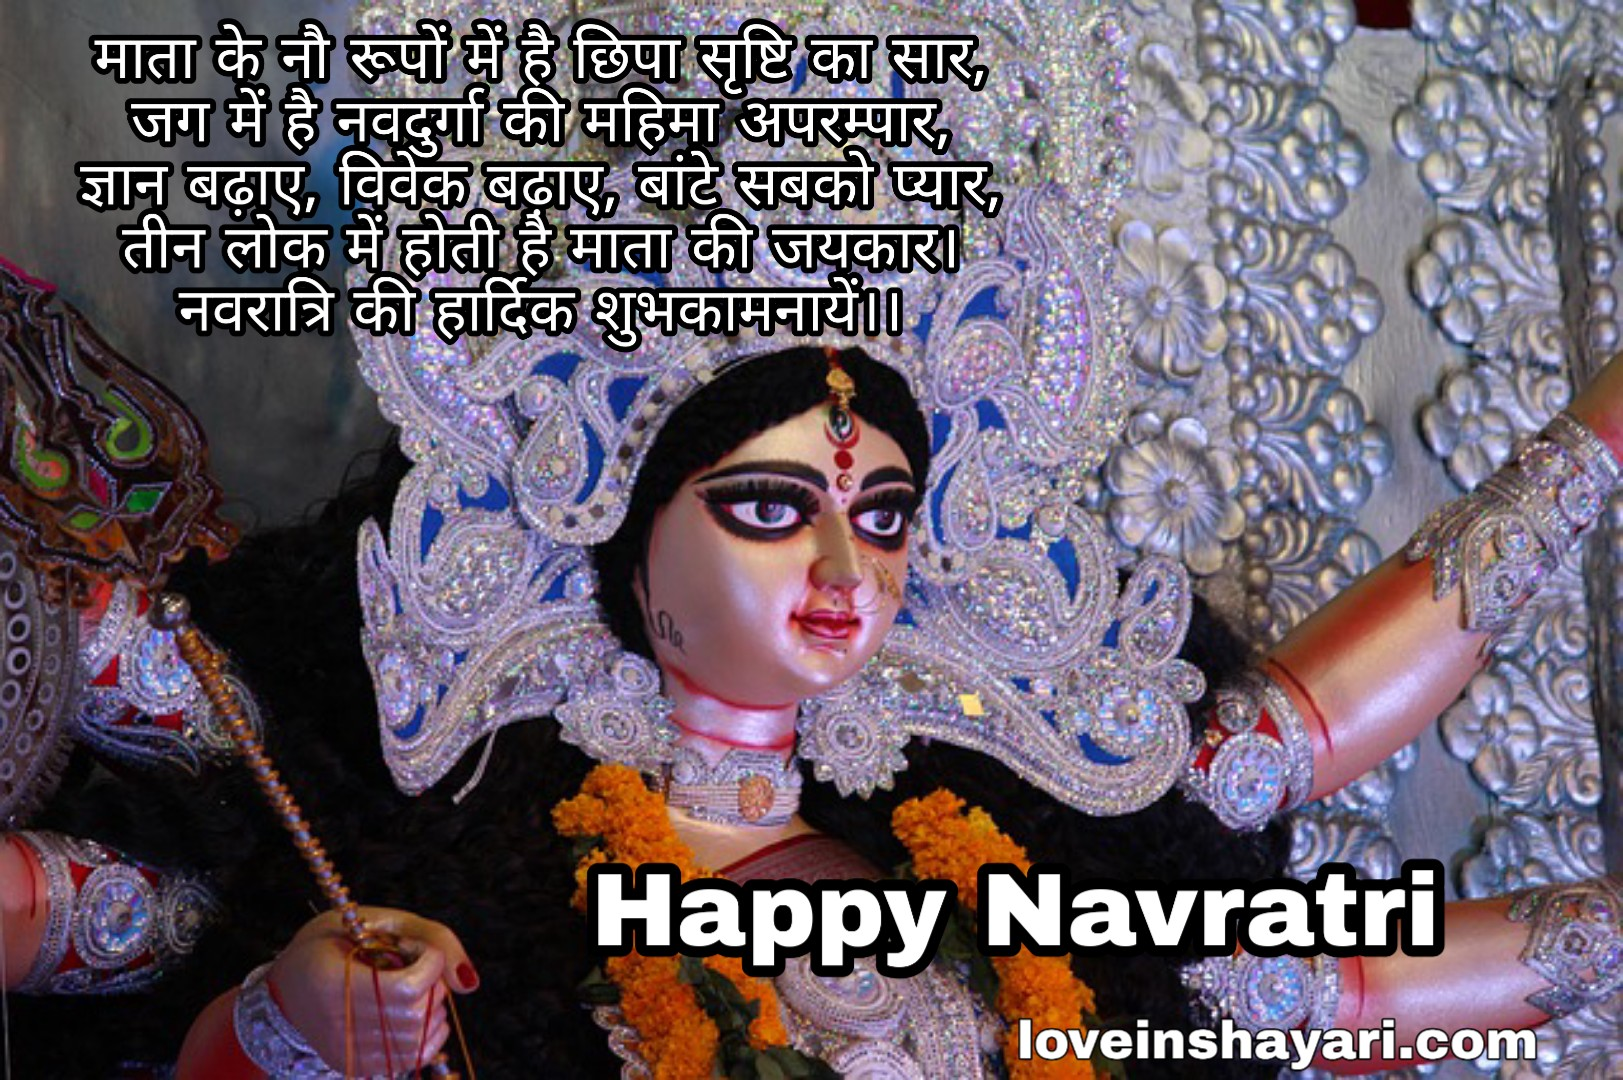 Happy Navratri status whatsapp status 2020